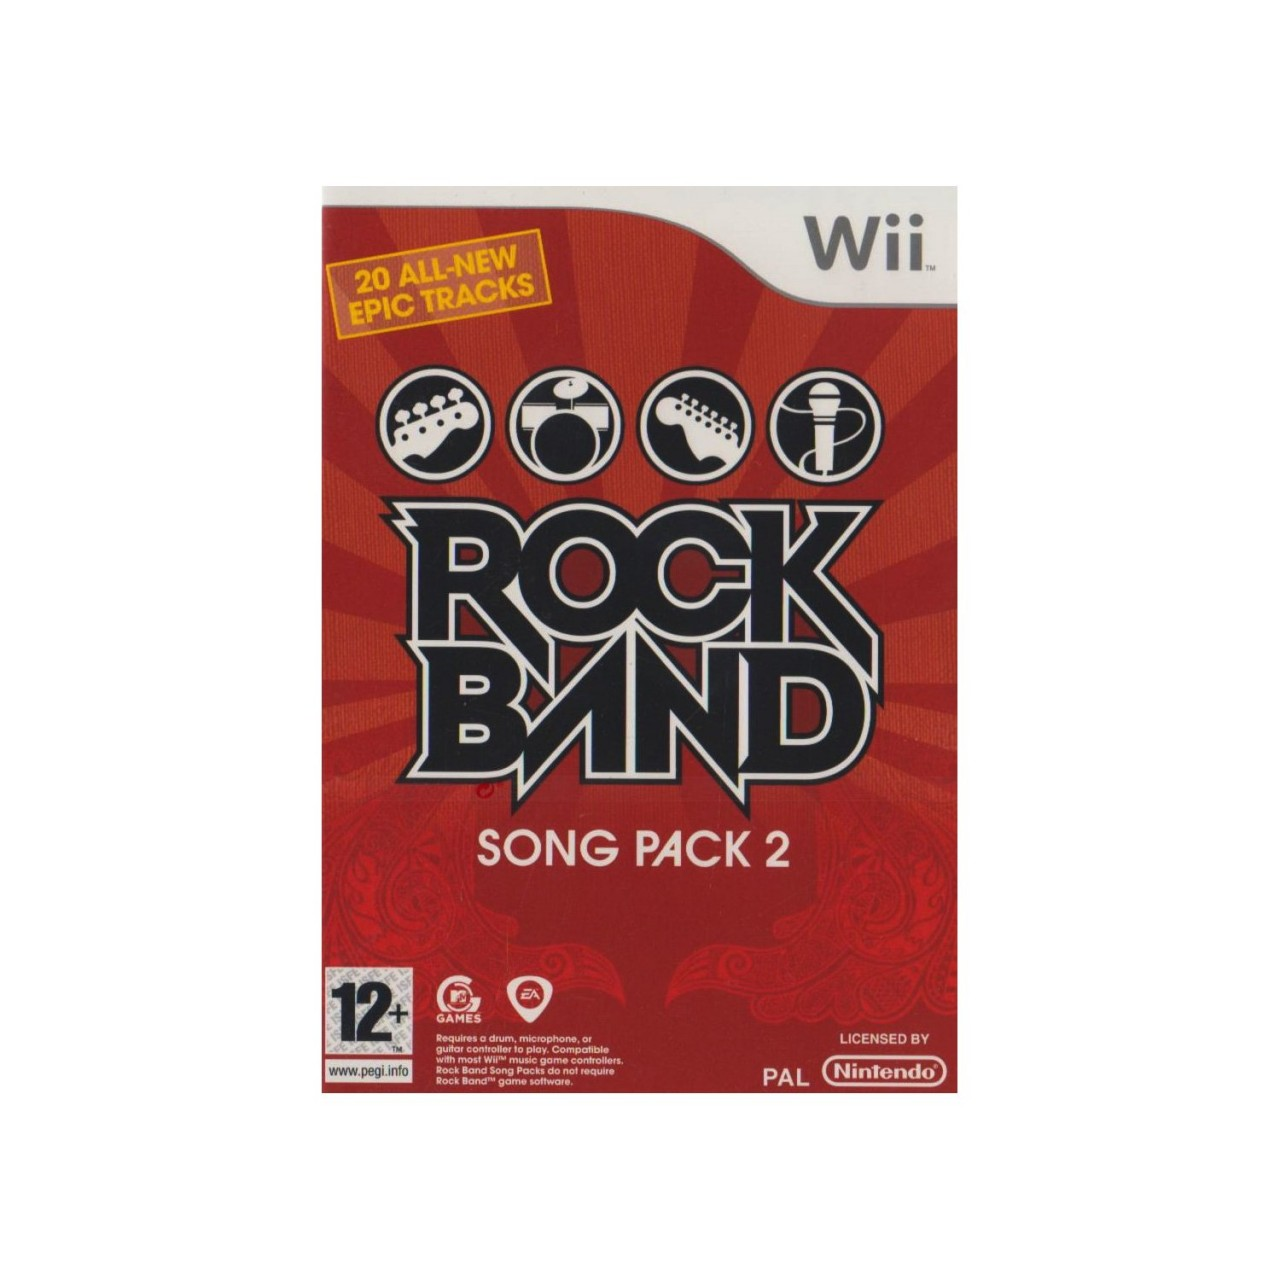 Rock Band Song Pack 2 Wii